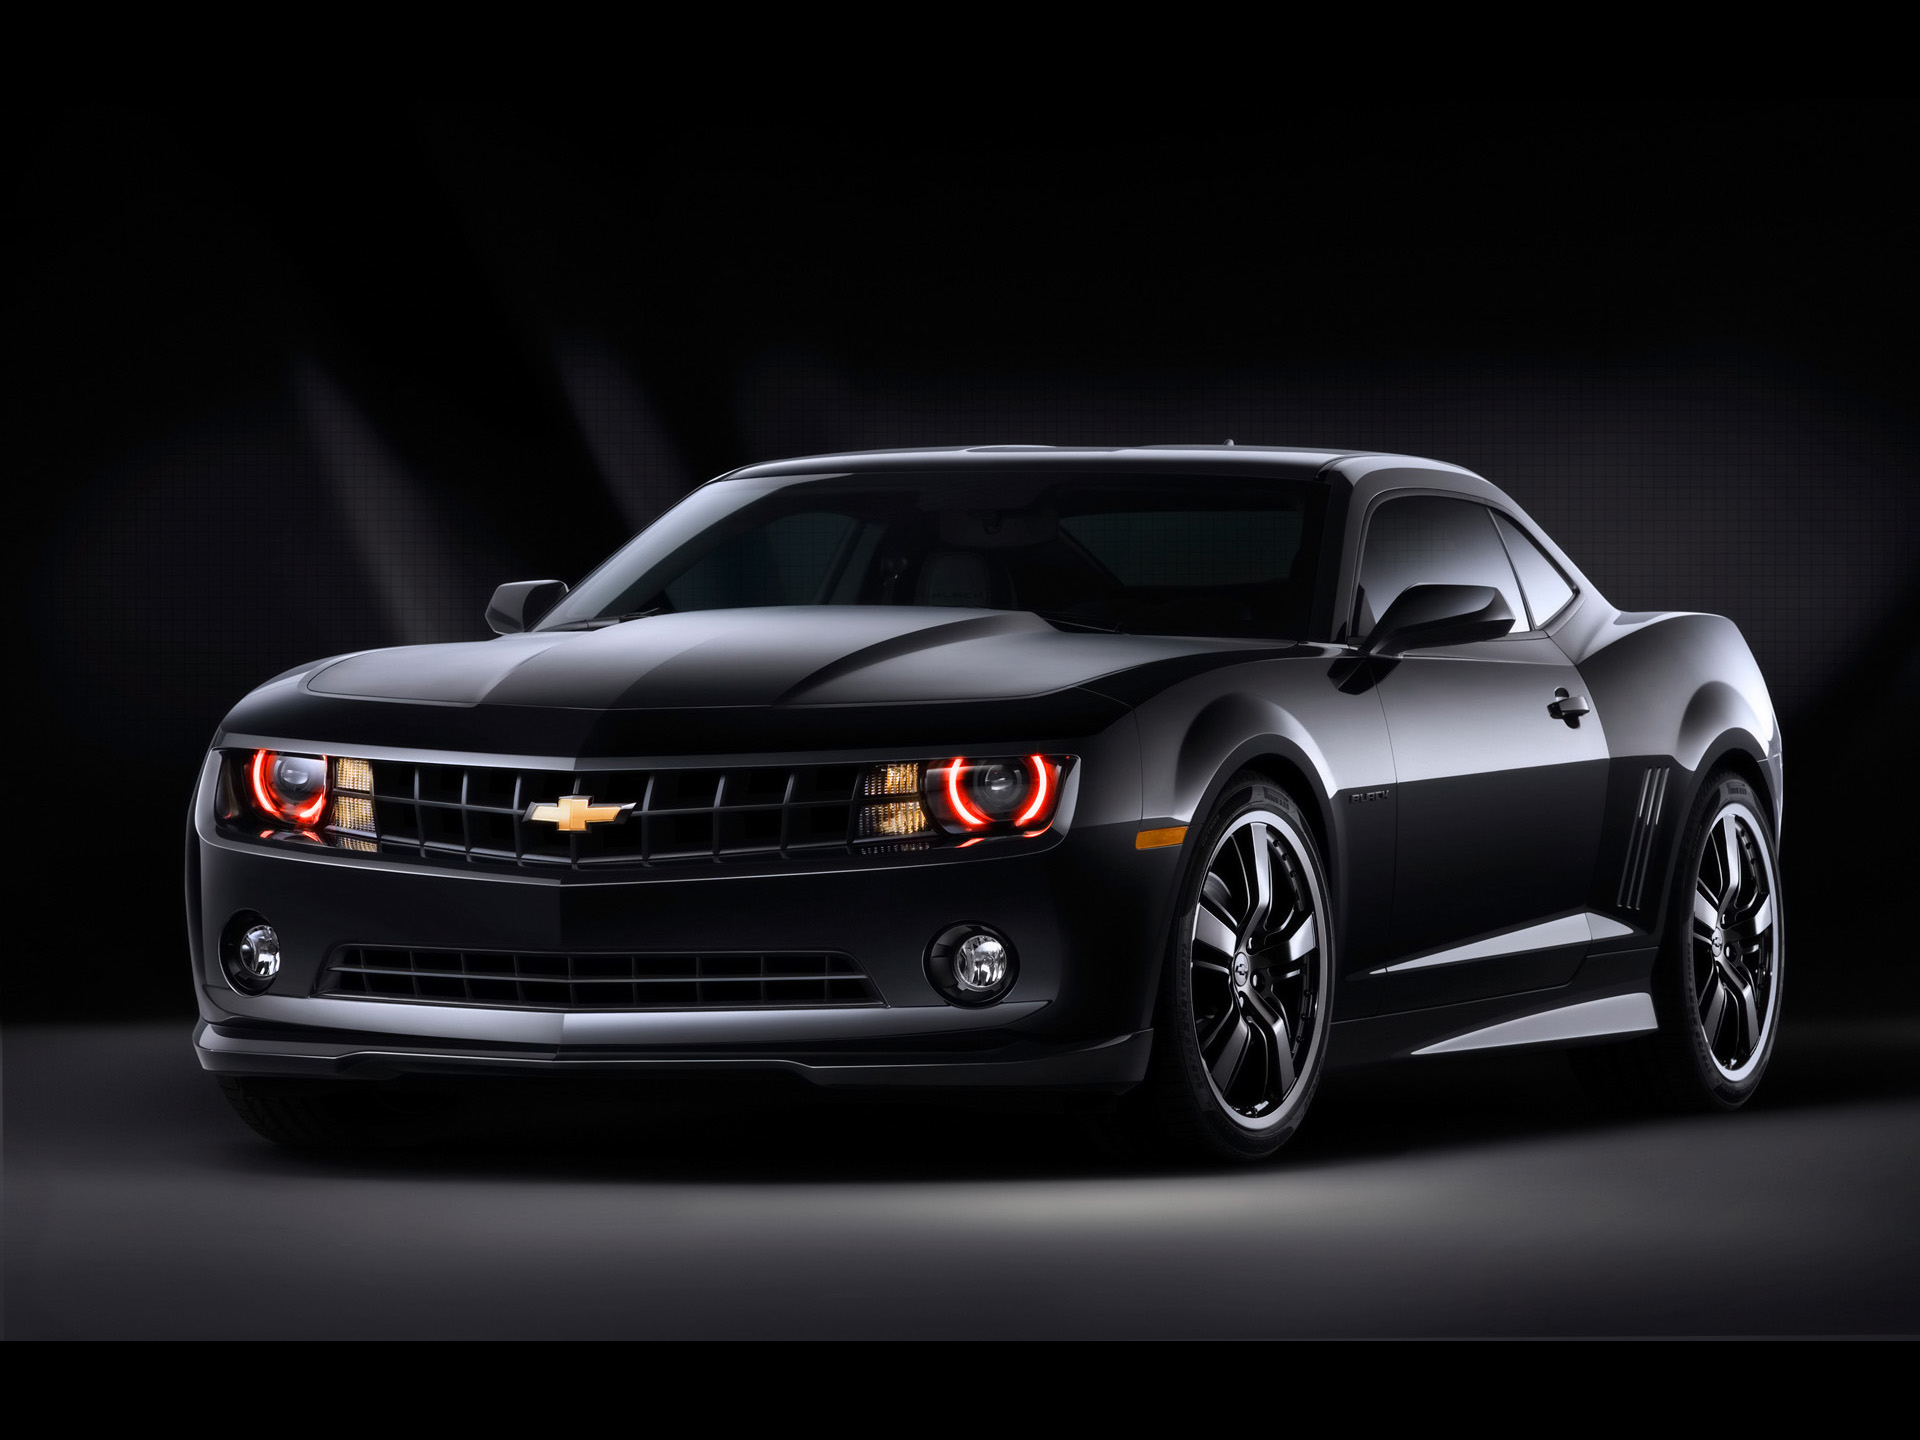 1920x1440 Camaro black front desktop PC and Mac wallpaper 1920x1440